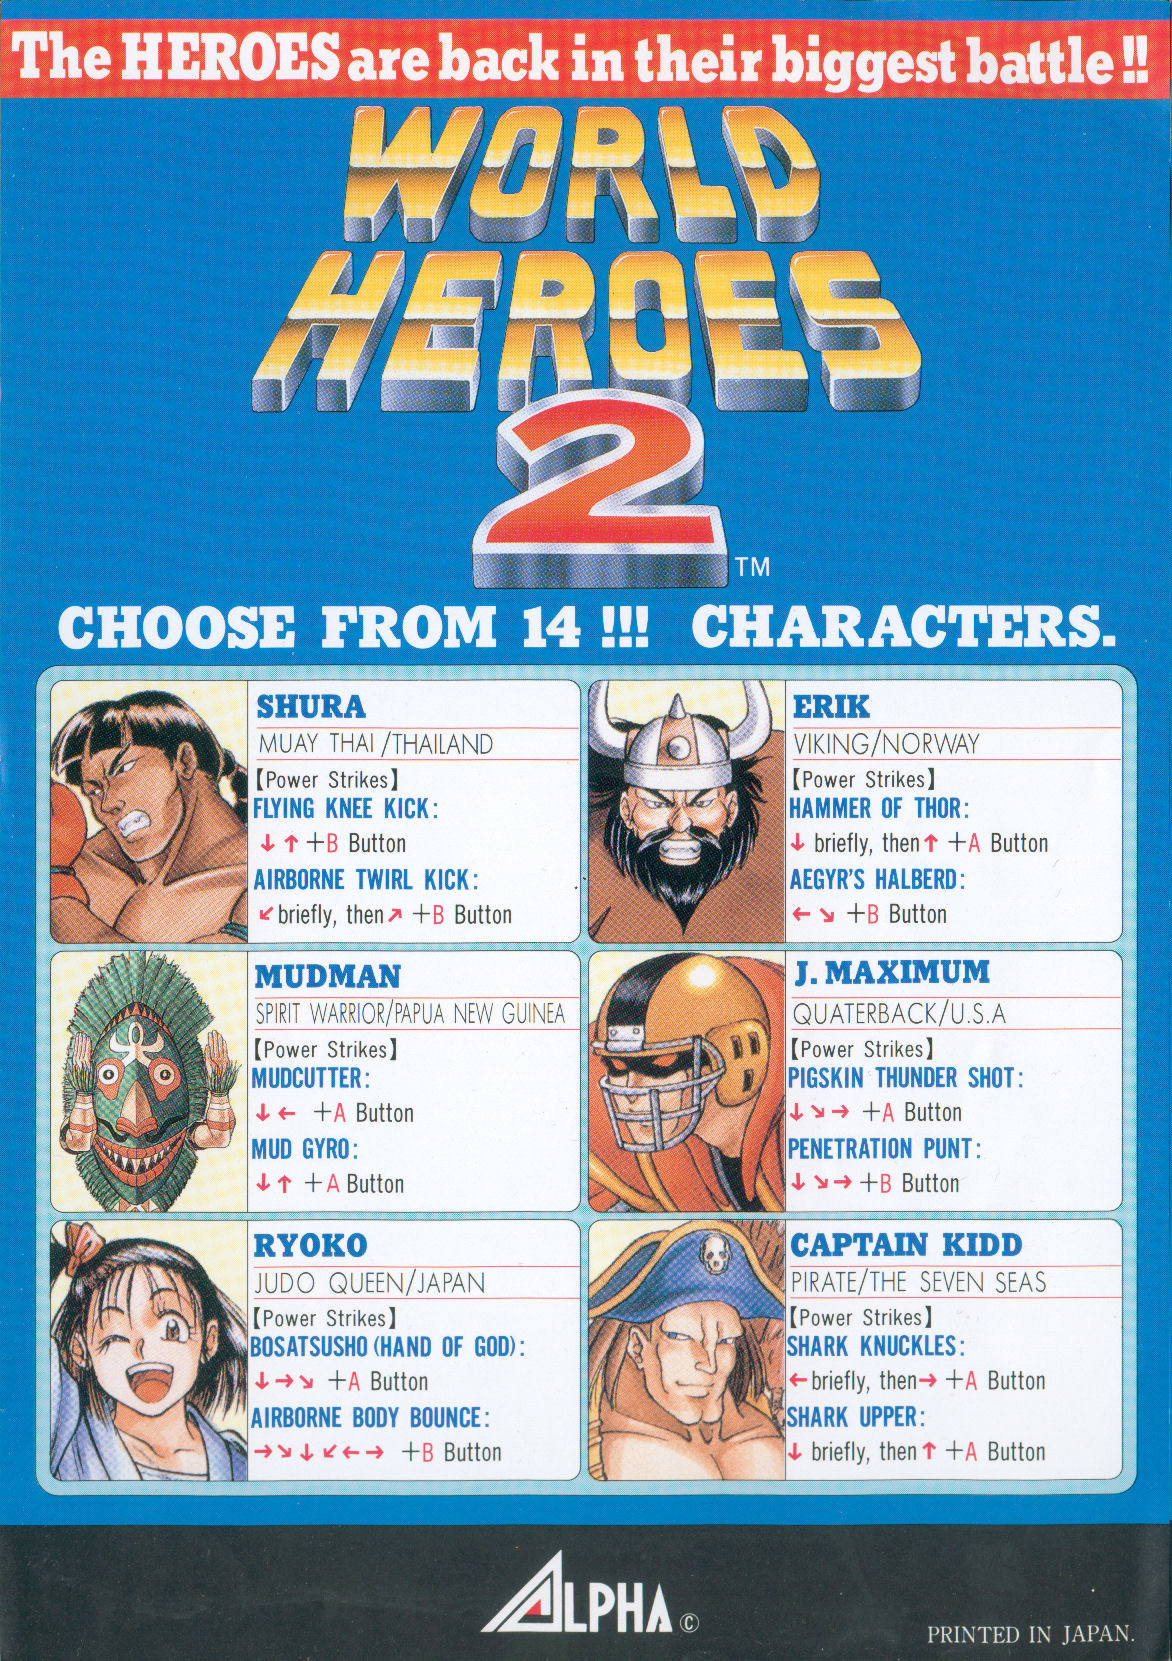 World Heroes 2 Video Game Fighting Reviews Ratings Glitchwave Video Games Database